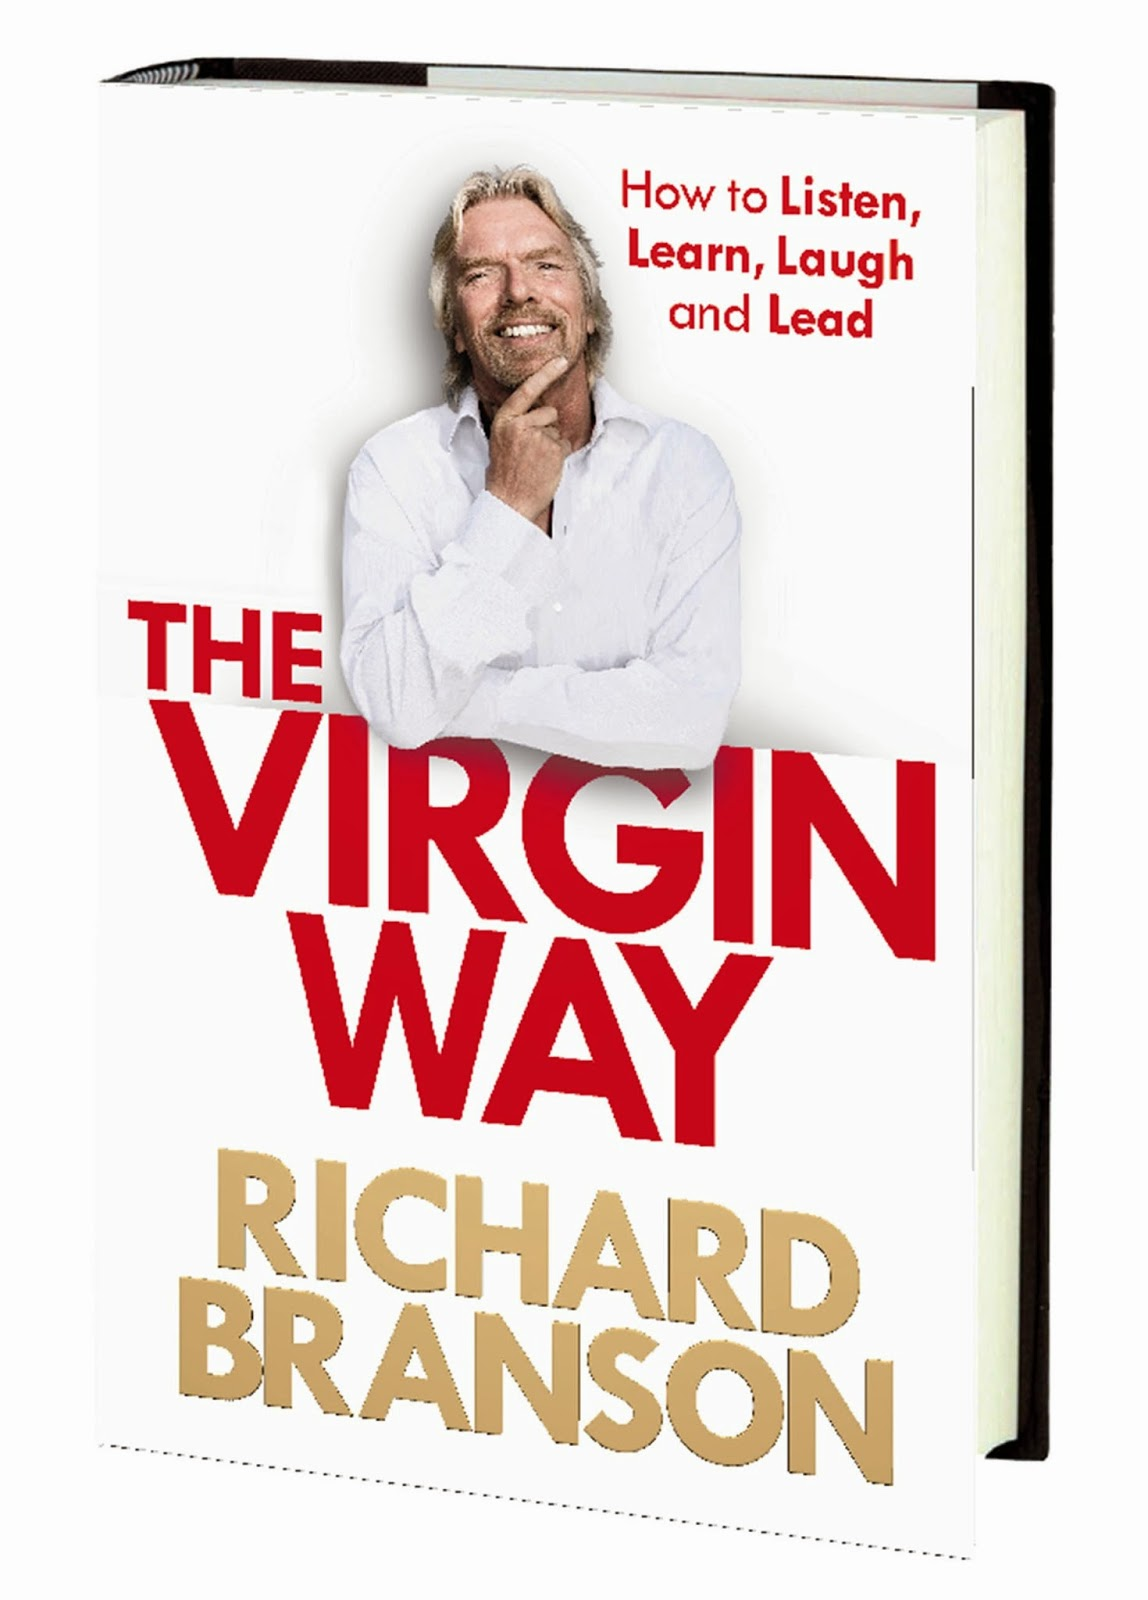 http://www.amazon.com/The-Virgin-Way-Listen-Learn-ebook/dp/B00H51SZV8